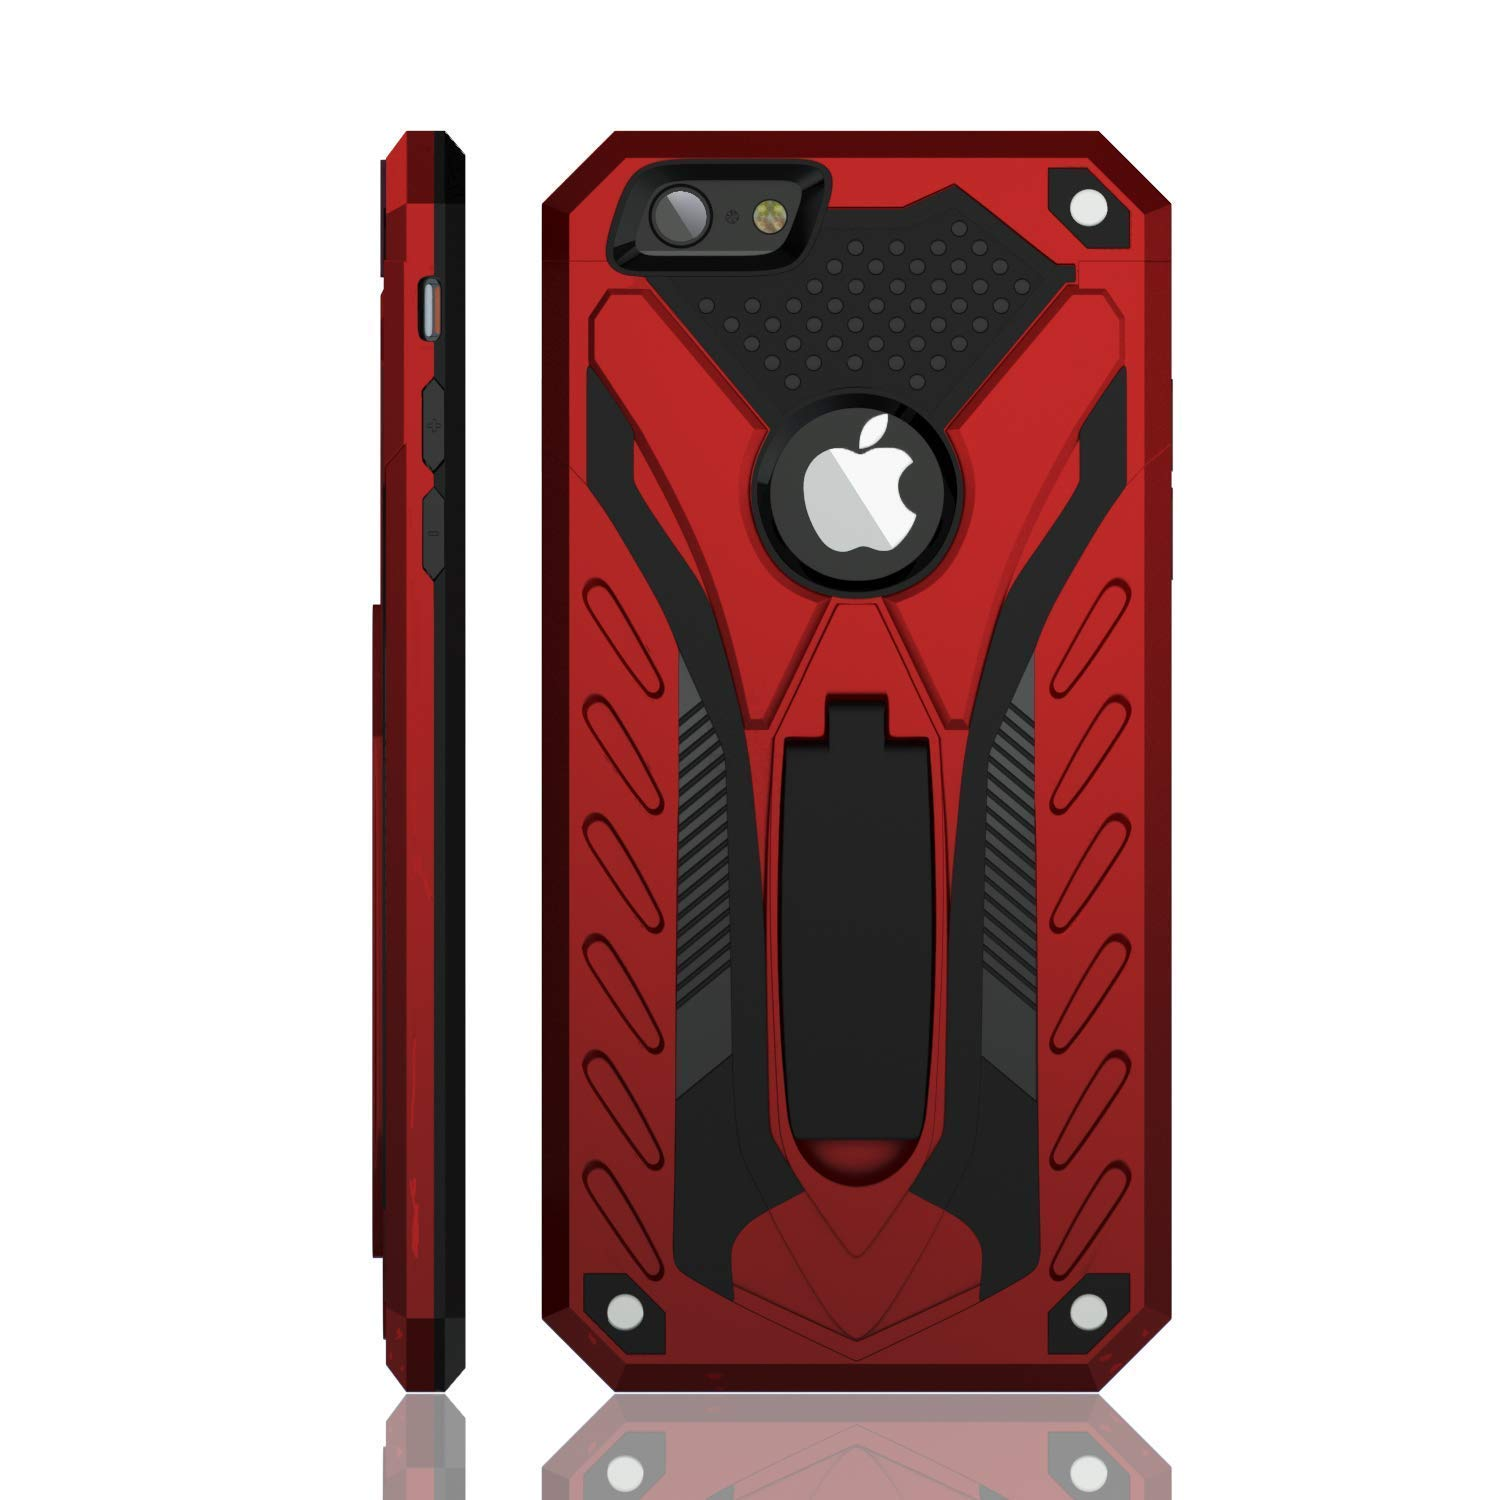 iPhone 6 Plus Case | iPhone 6S Plus Case | Military Grade | 12ft. Drop Tested Protective Case | Kickstand | Compatible with Apple iPhone 6 Plus/iPhone 6S Plus - Red